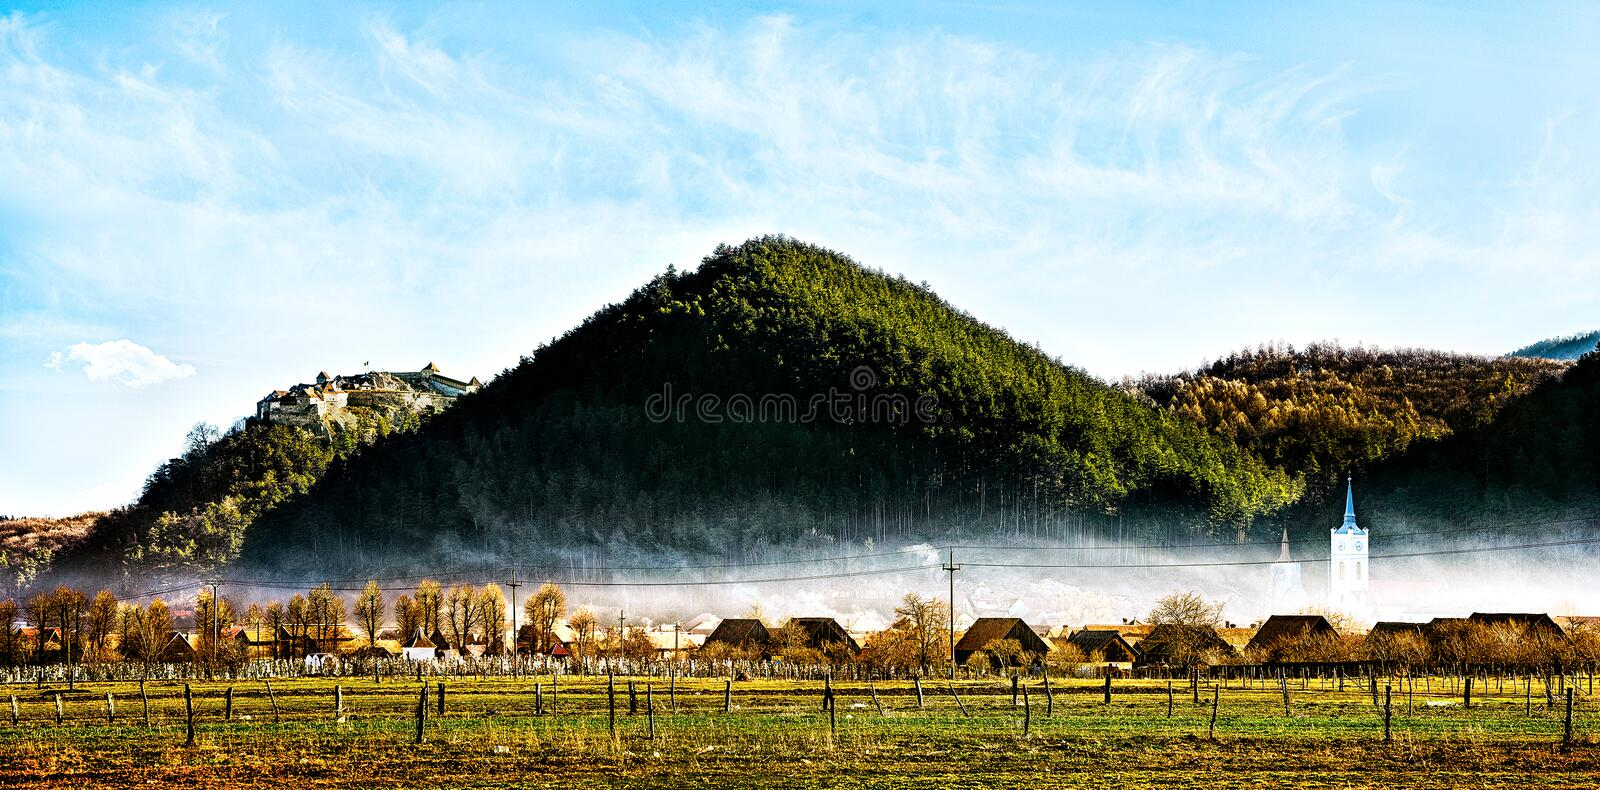 Download Beautiful Castle On A Peak Over A Town And A Cemetry Under The Blue Sky Stock Photo - Image: 30837094